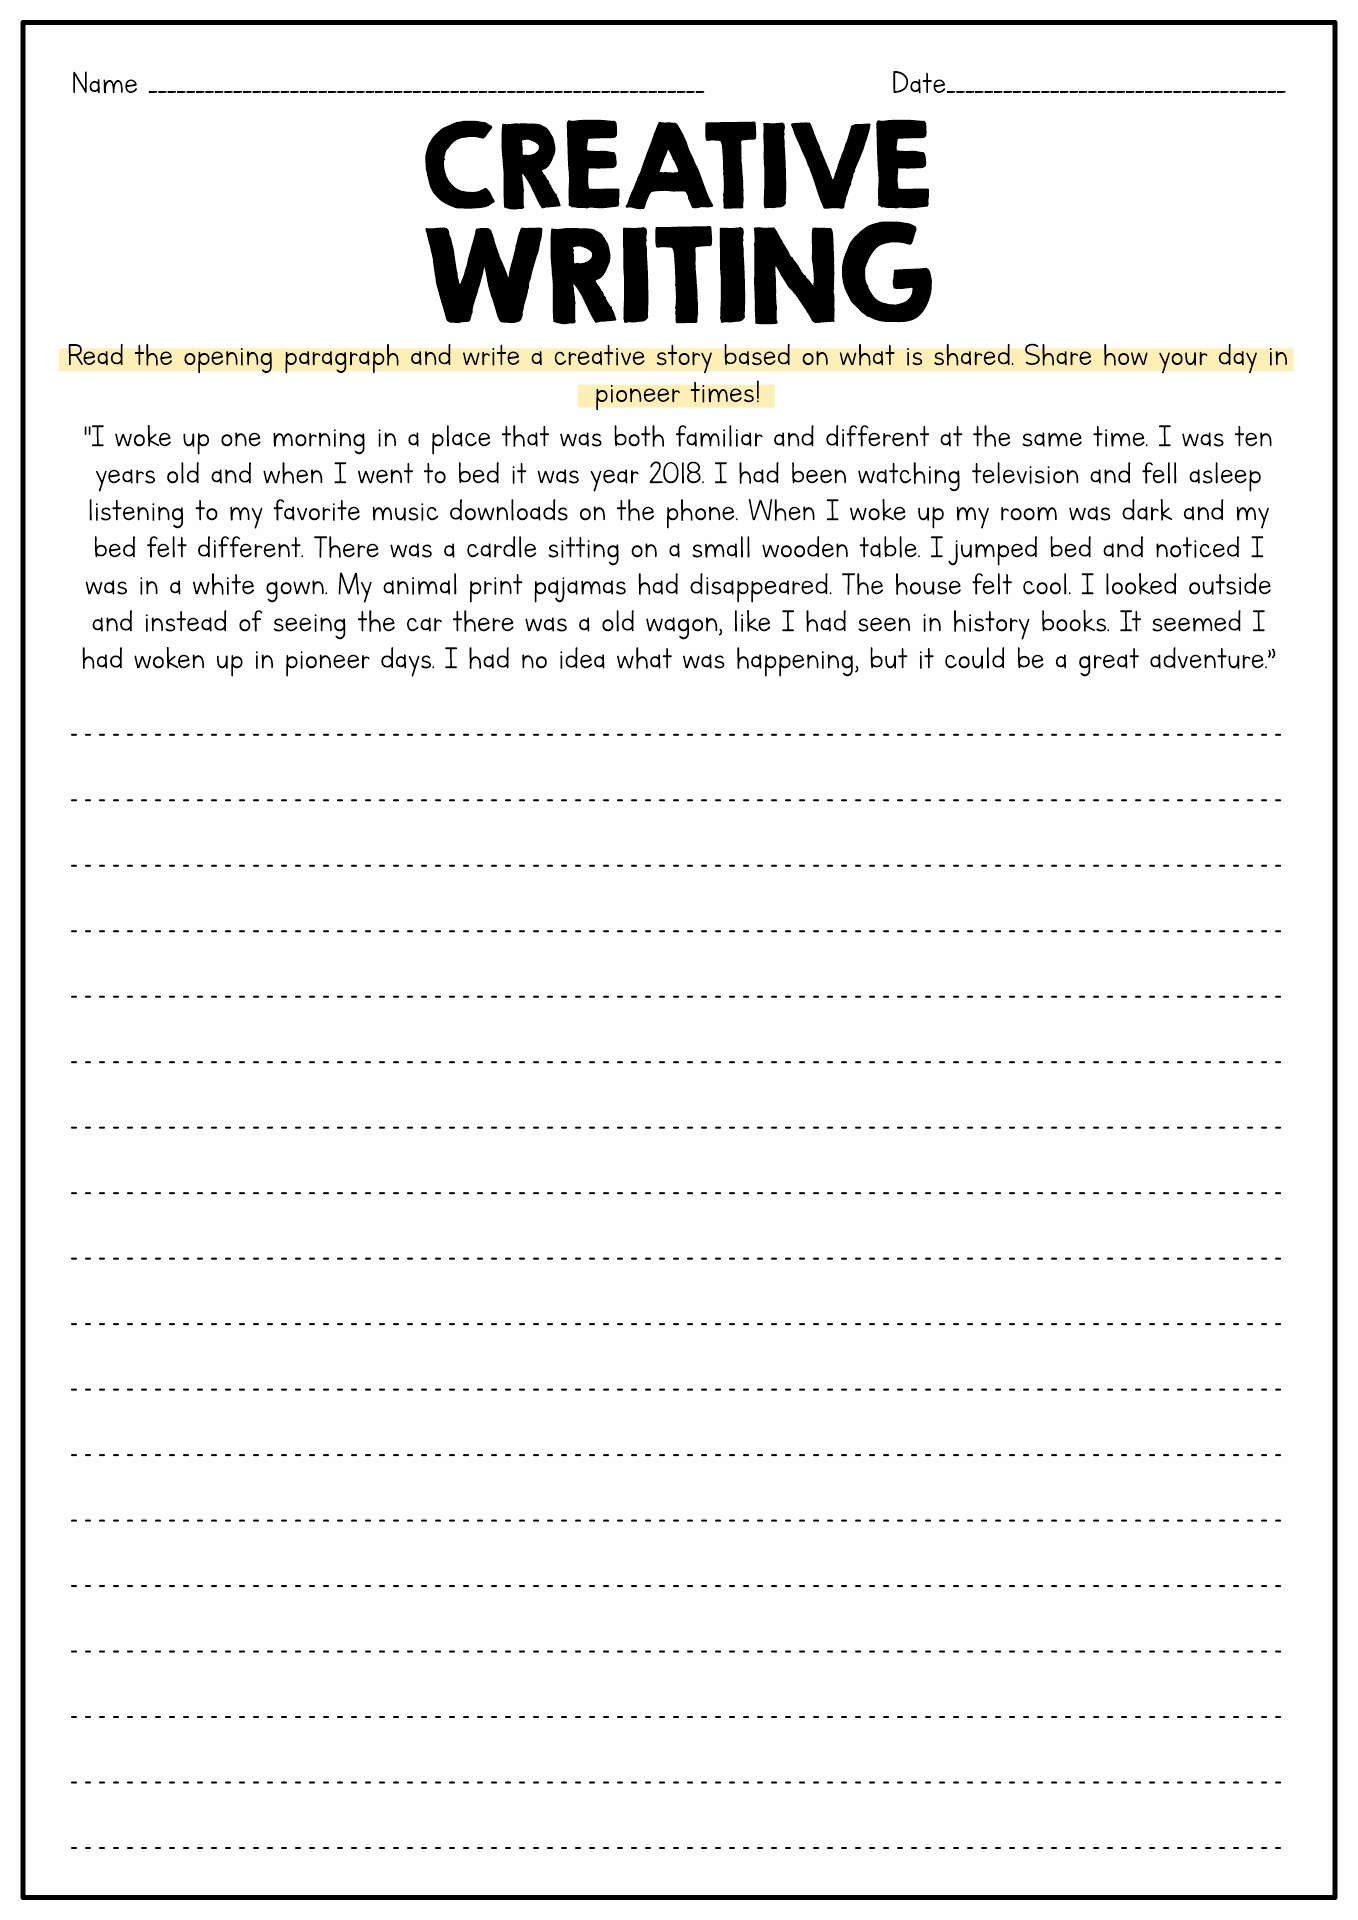 Dialogue Writing Worksheet For Grade 3